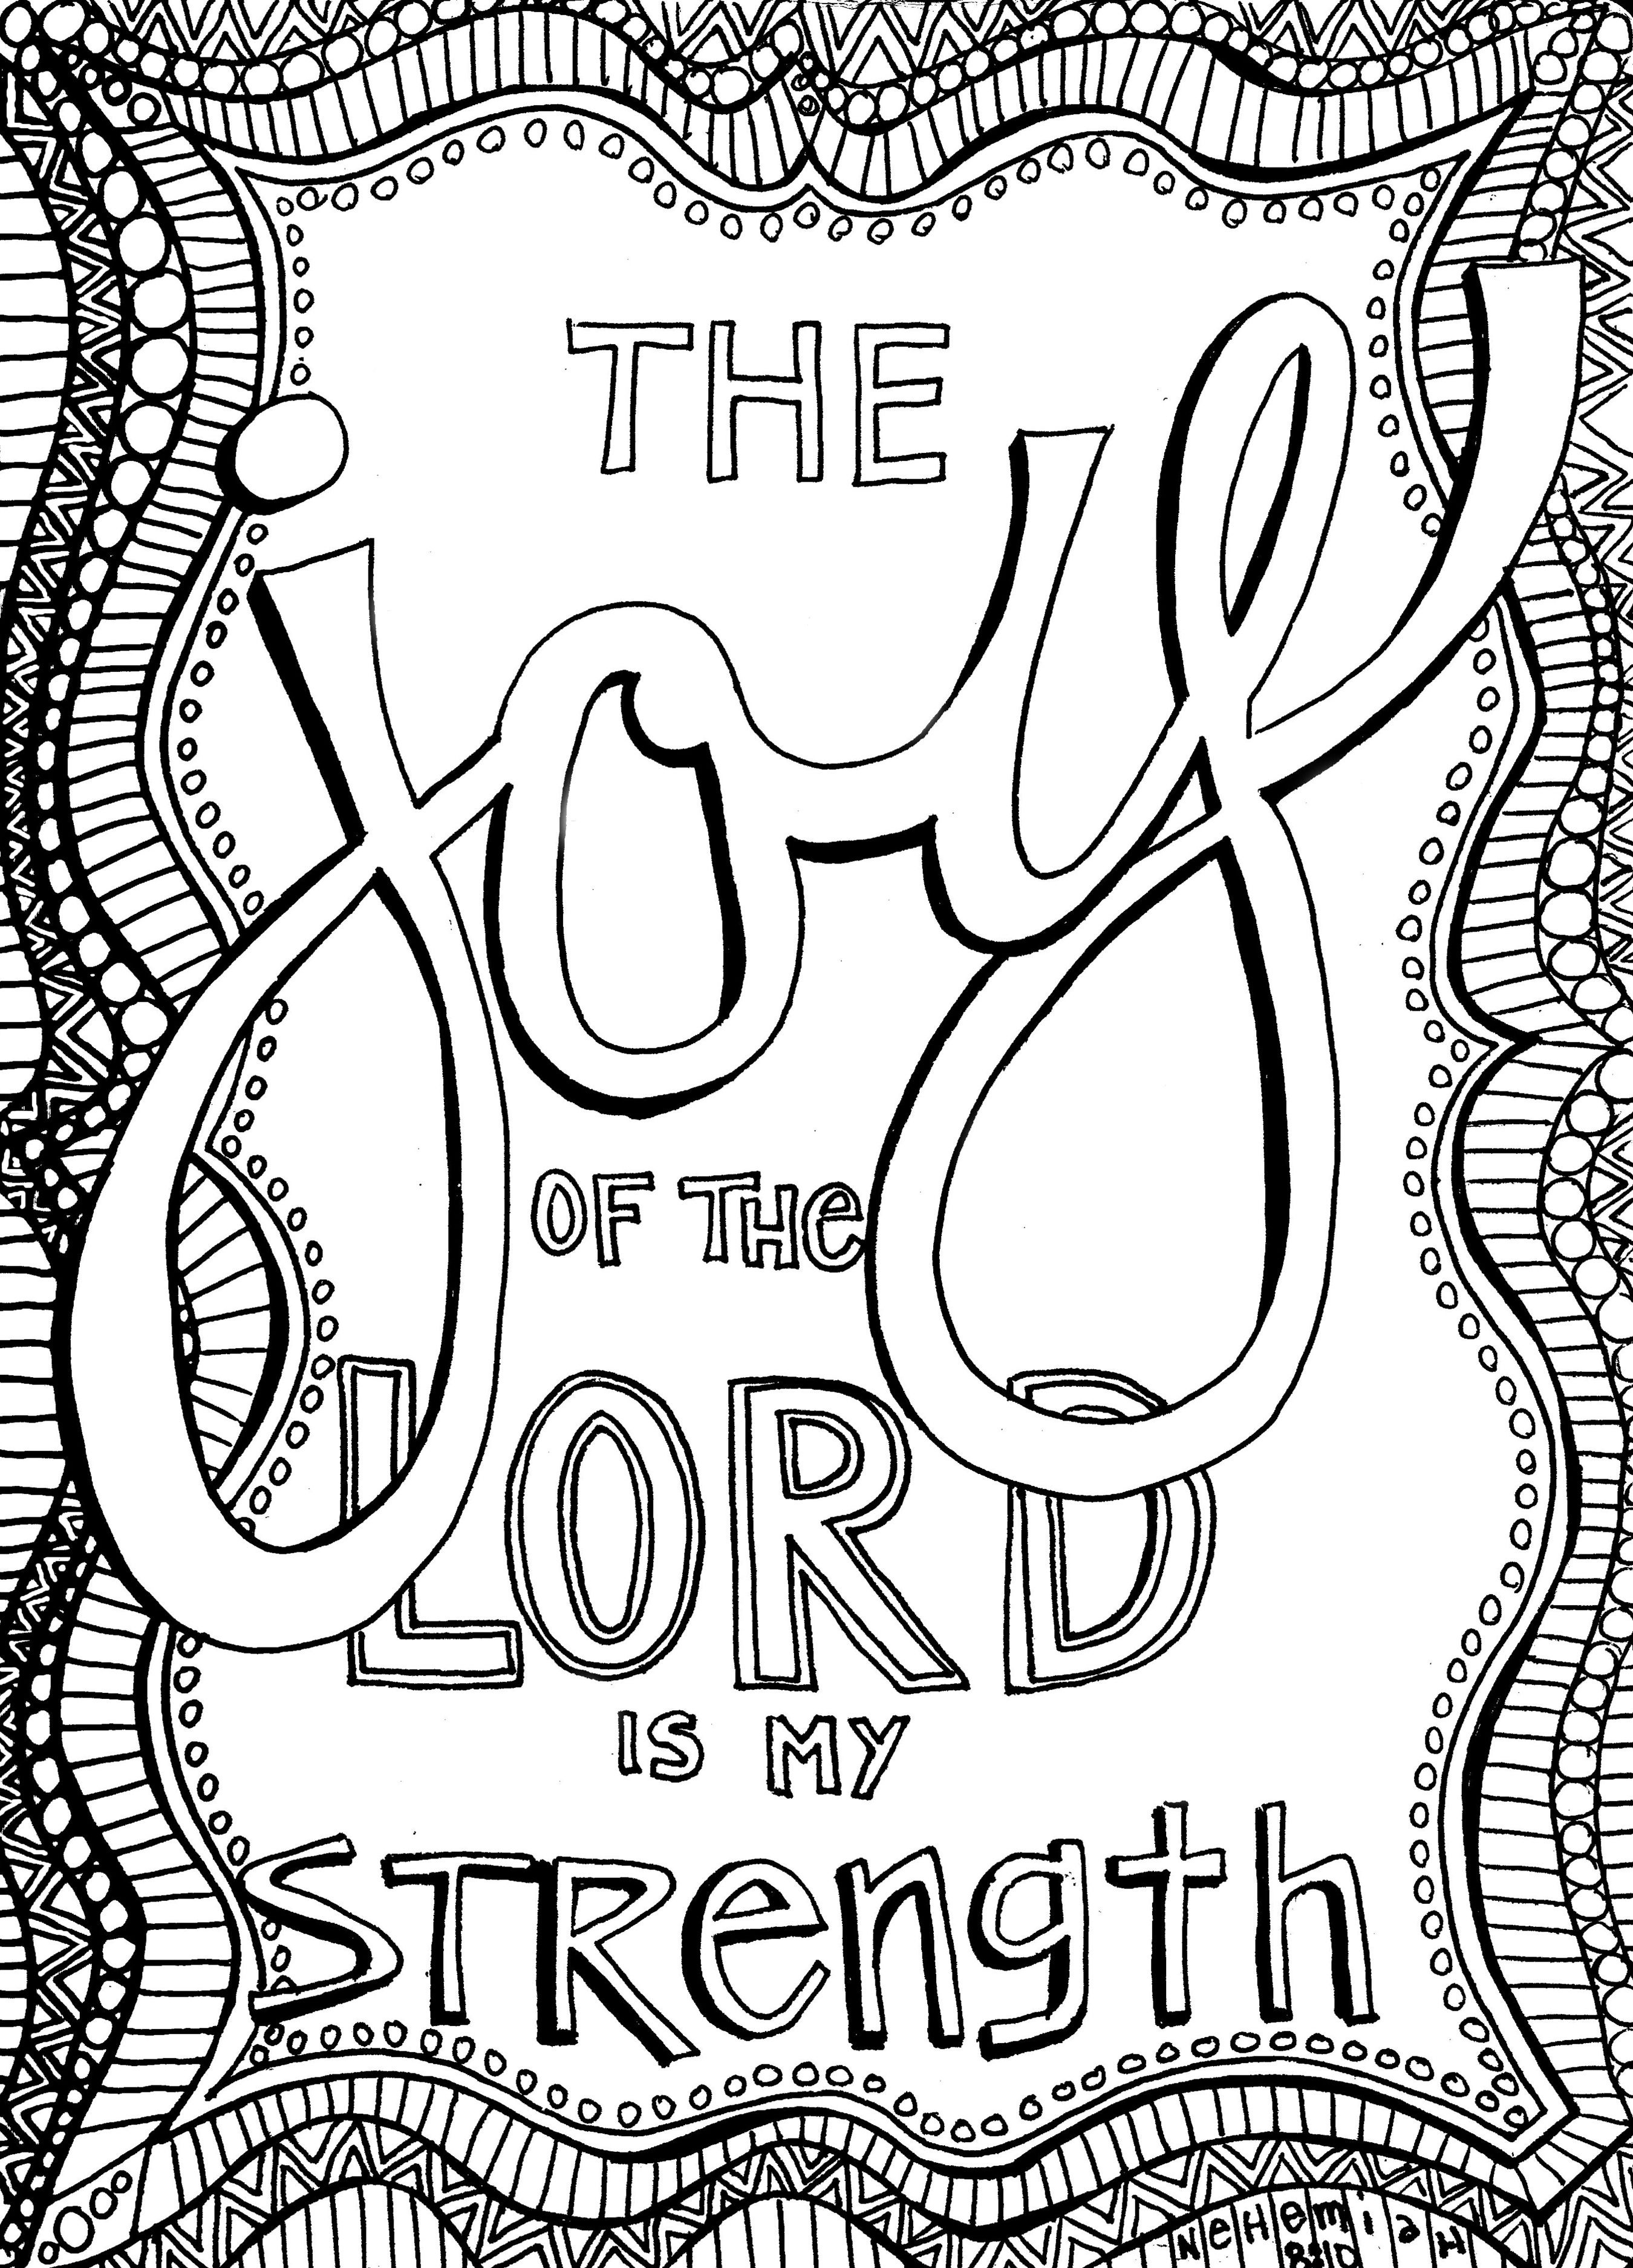 Free Christian Coloring Pages For Adults - Roundup | Bible - Free Printable Bible Verses Adults